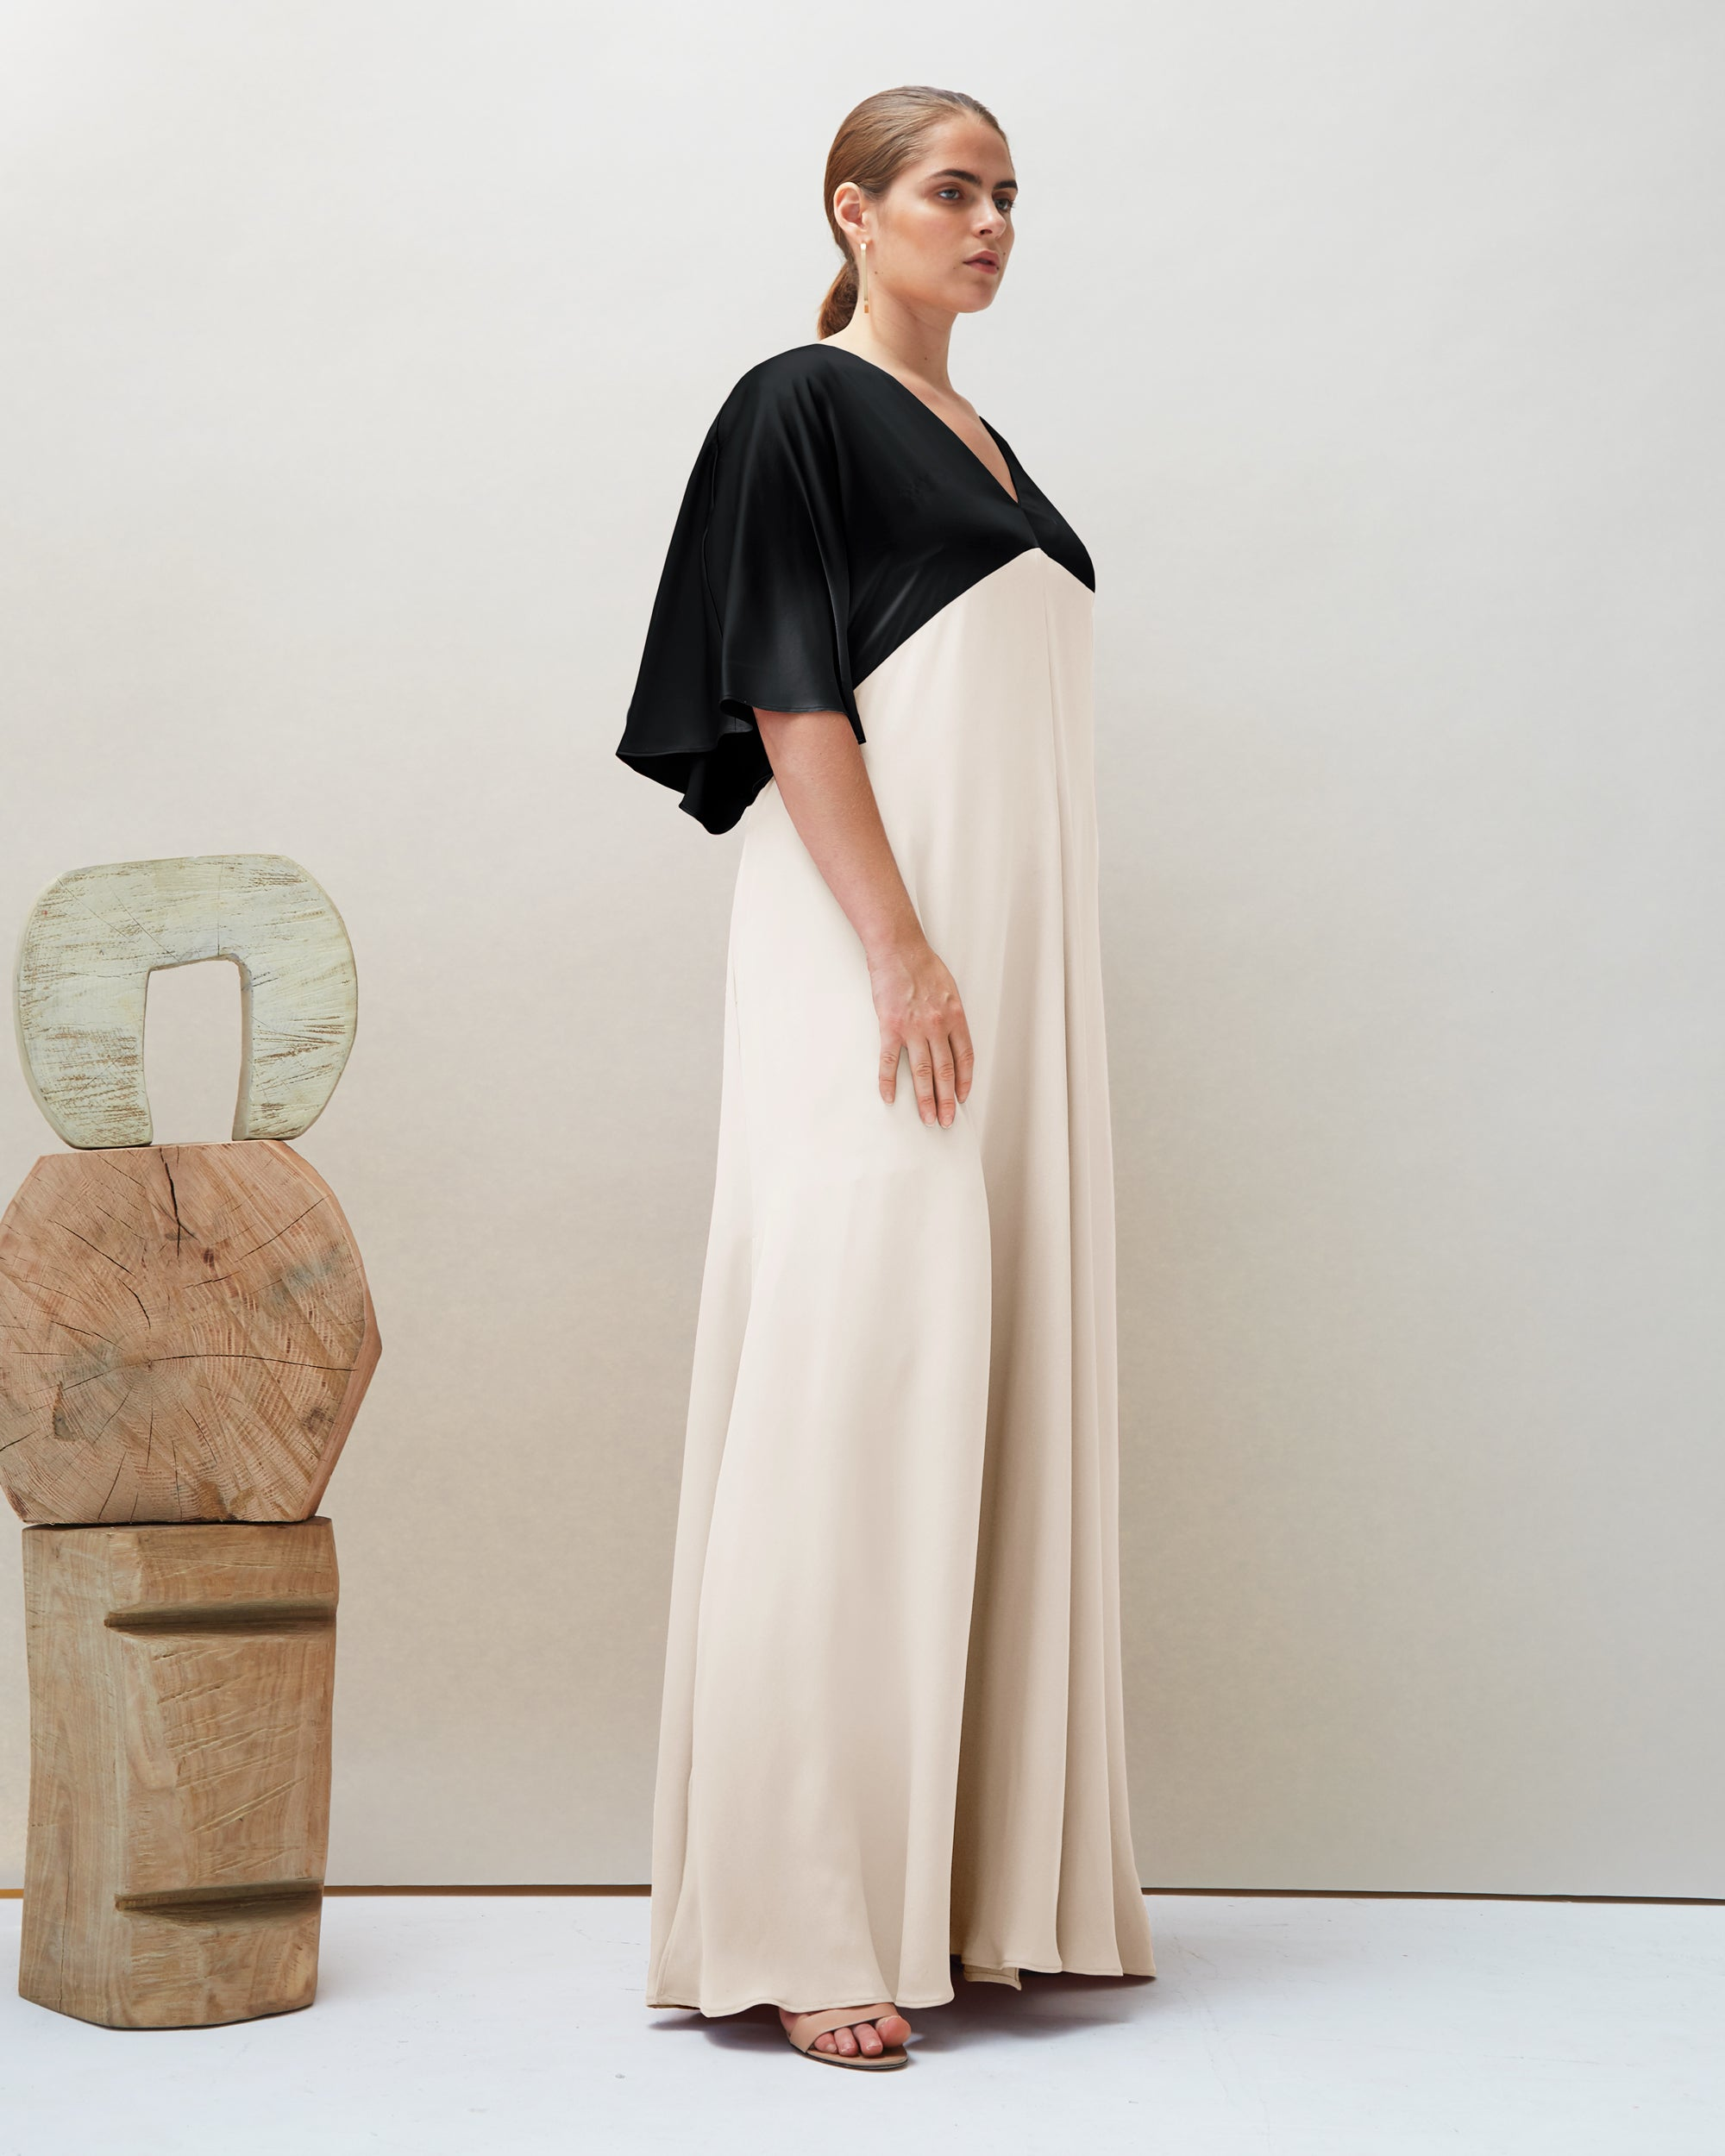 Seta Gown in Black & Ivory